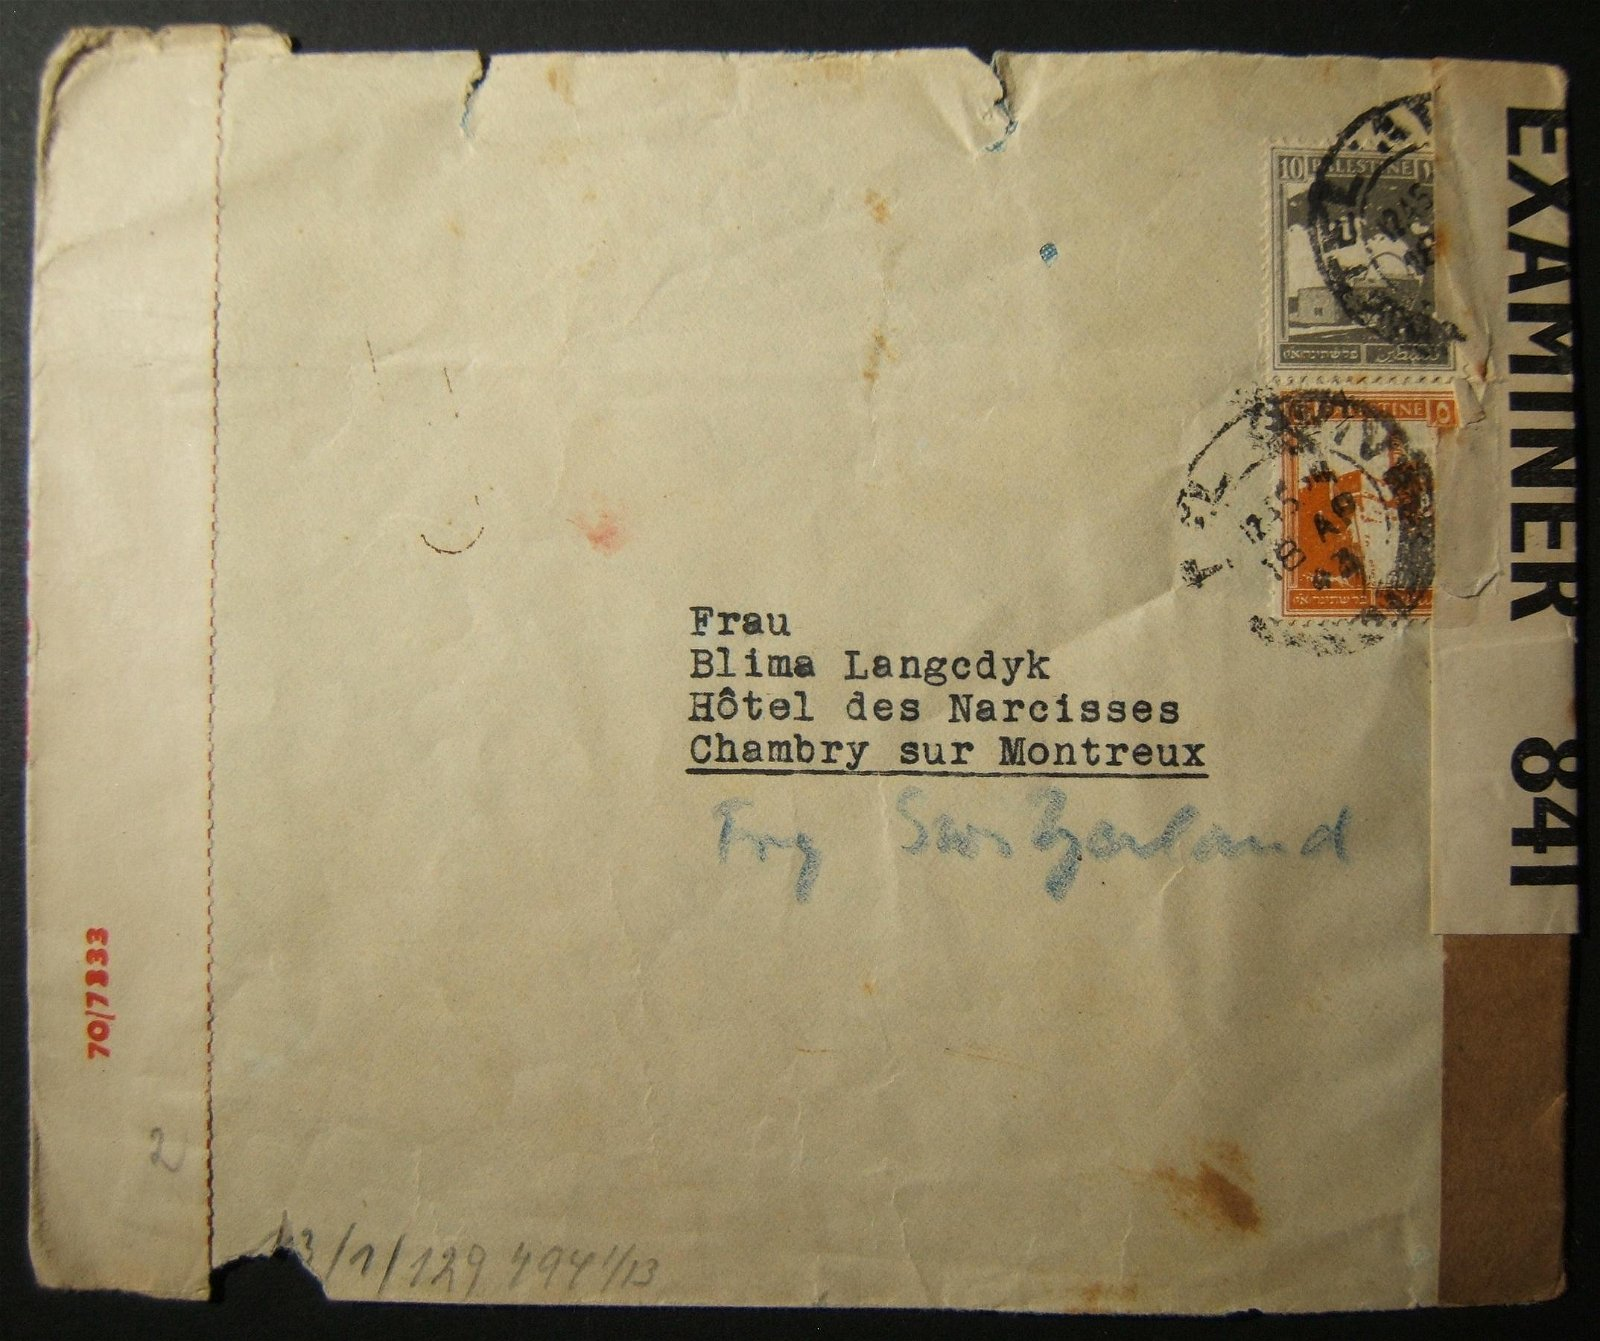 4/1943 WWII triple-censored mail from TEL AVIV to Swiss